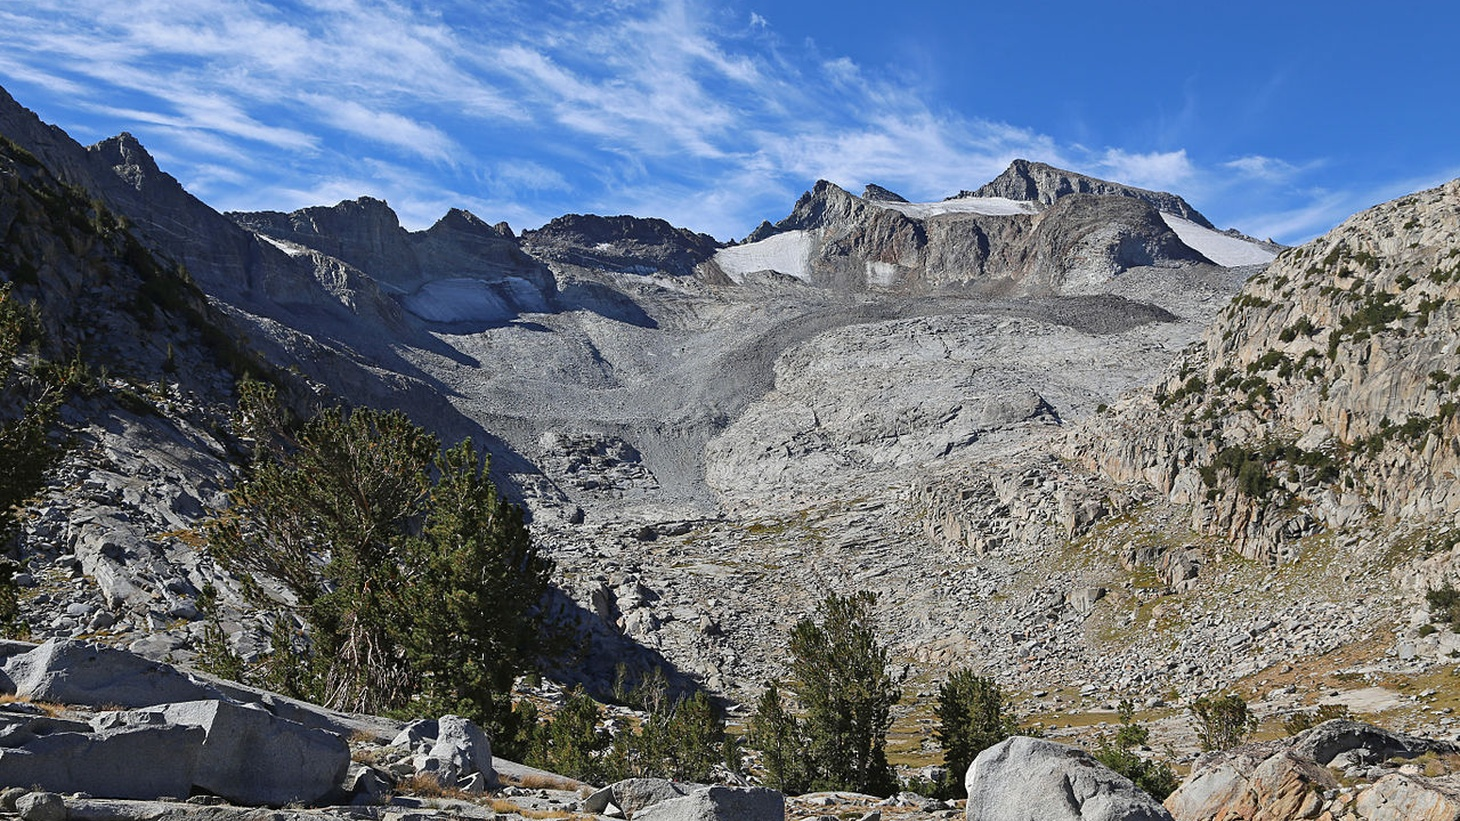 Mt Lyell, viewed from the John Muir Trail / Pacific Crest Trail on the shoulder North of Donahue Pass. Ansel Adams Wilderness, Sierra Nevada mountains, California.